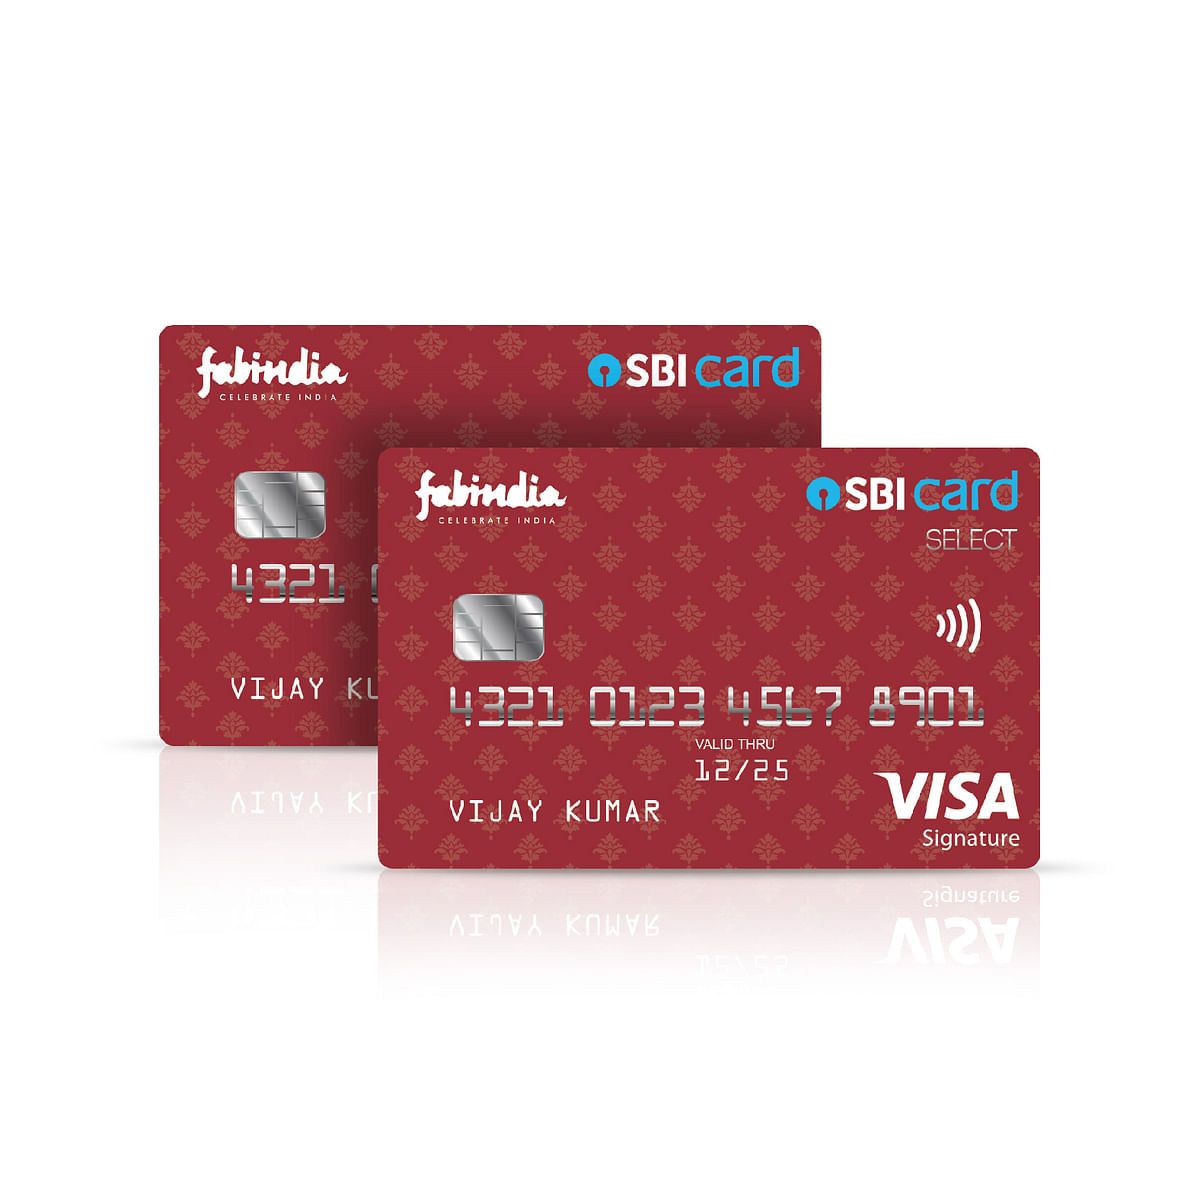 SBI Card, Fabindia launch co-branded contactless credit card for premium customers